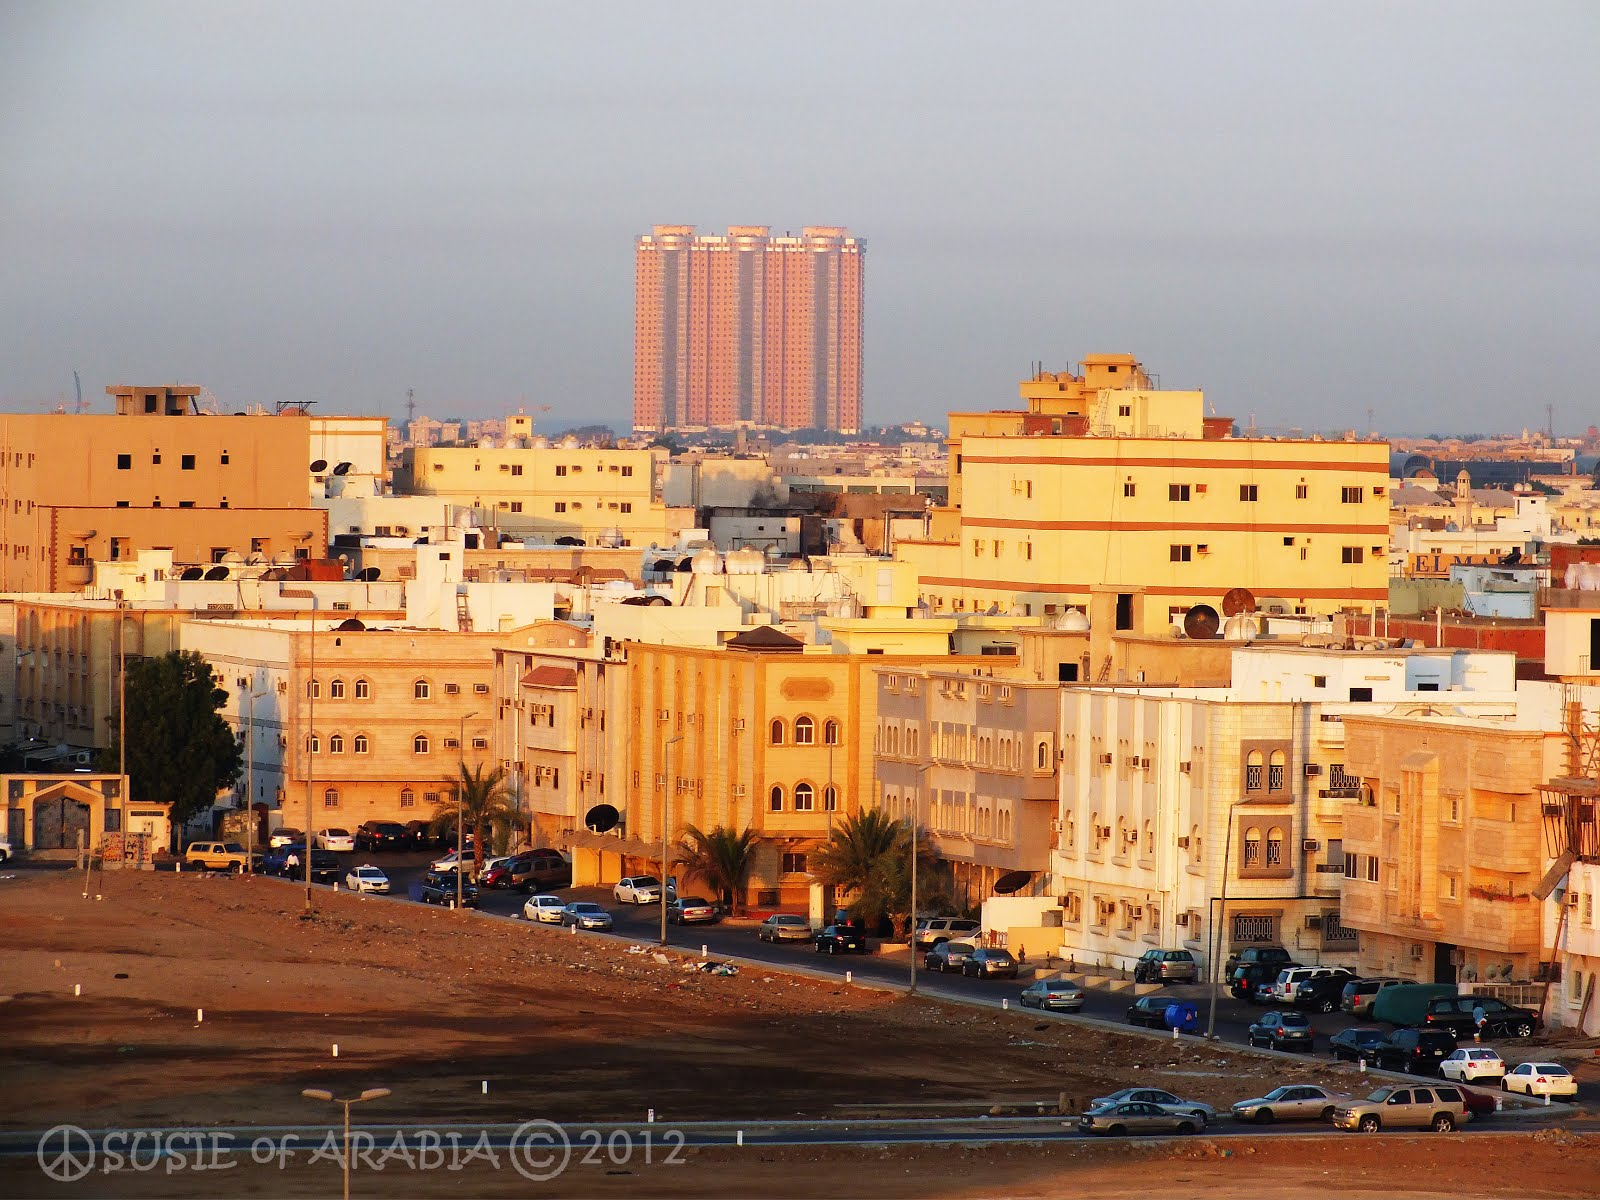 my city jeddah My hometown jeddah is the second largest city after riyadh, which is the capital city in saudi arabia in jeddah is the main port of the kingdom on the red sea.